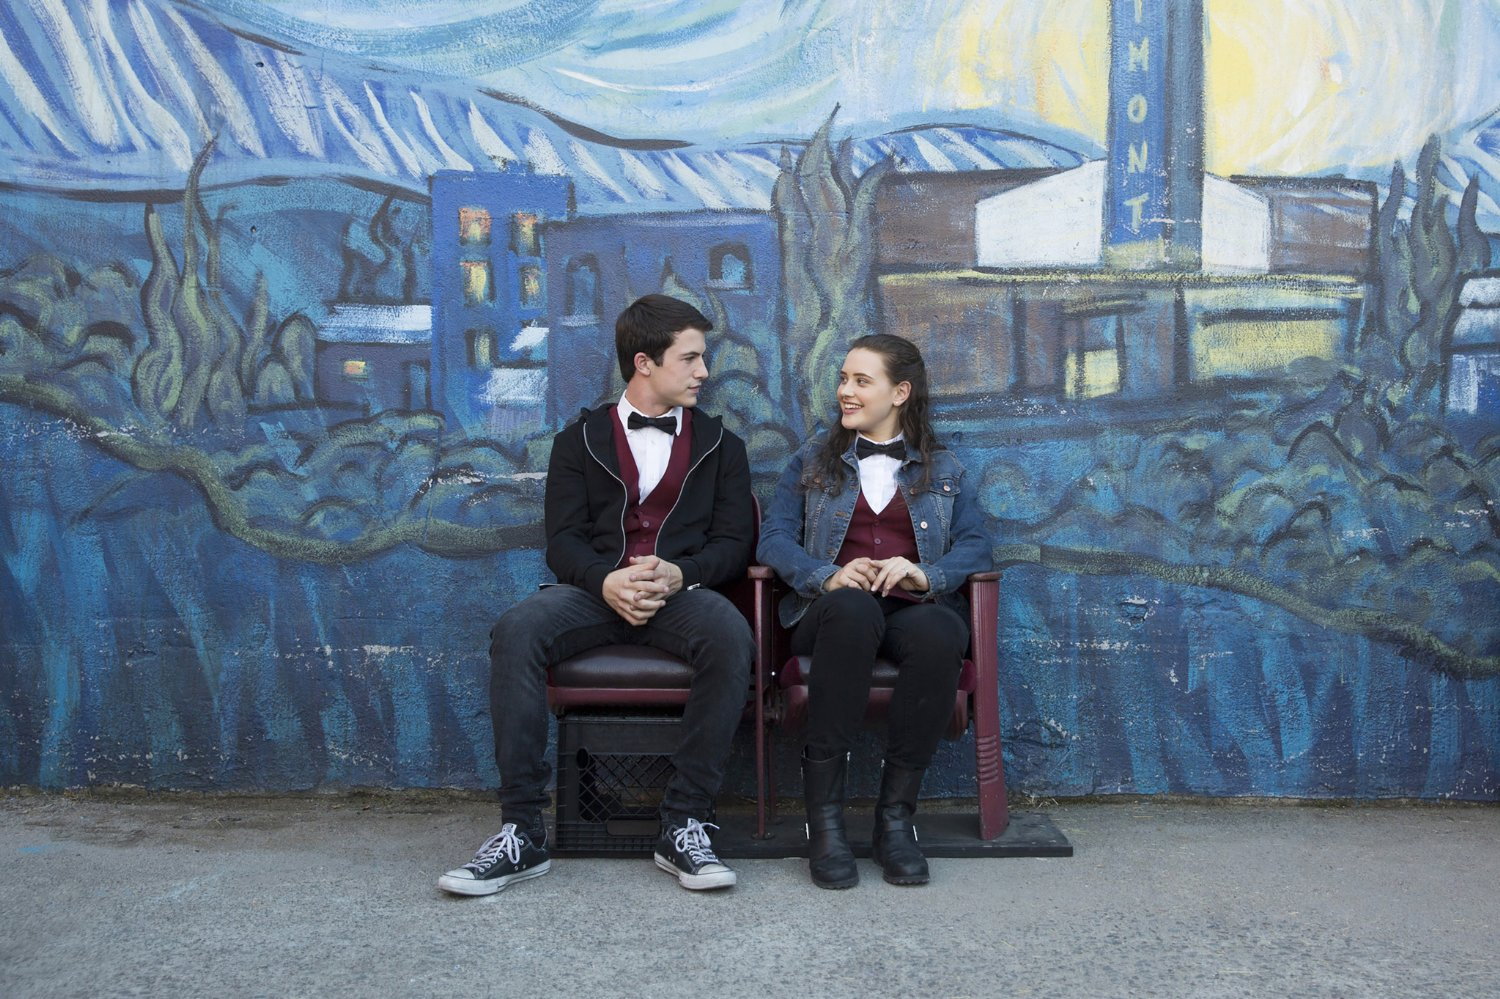 Dylan Minnette e Katherine Langford in 13 reasons why